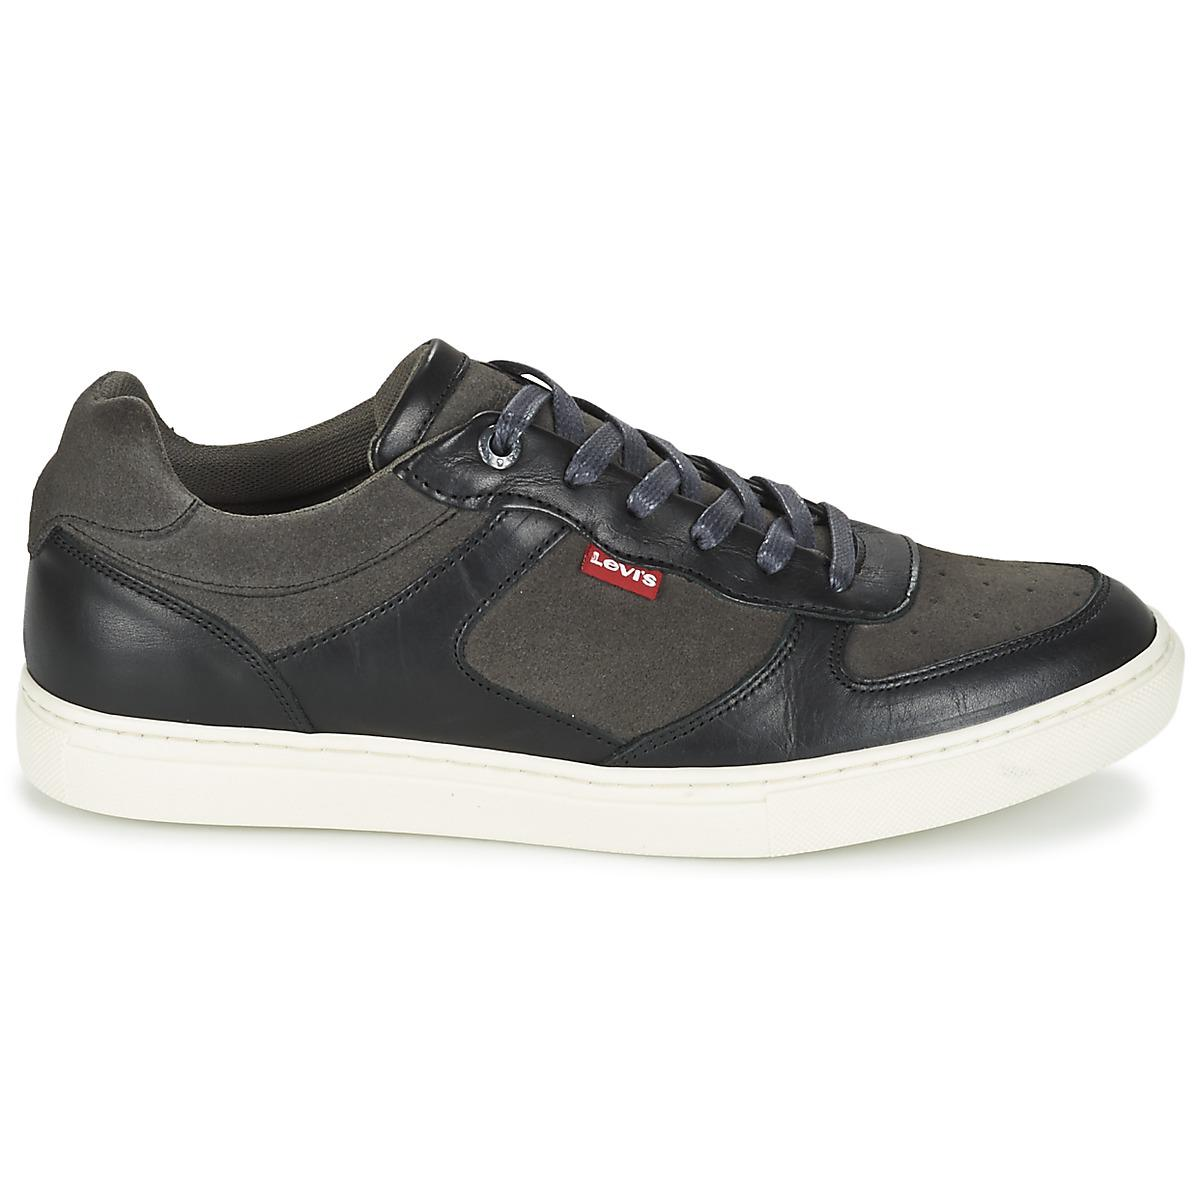 Levi's Leather Levis Perris Oxford Men's Shoes (trainers) In Grey in Grey for Men